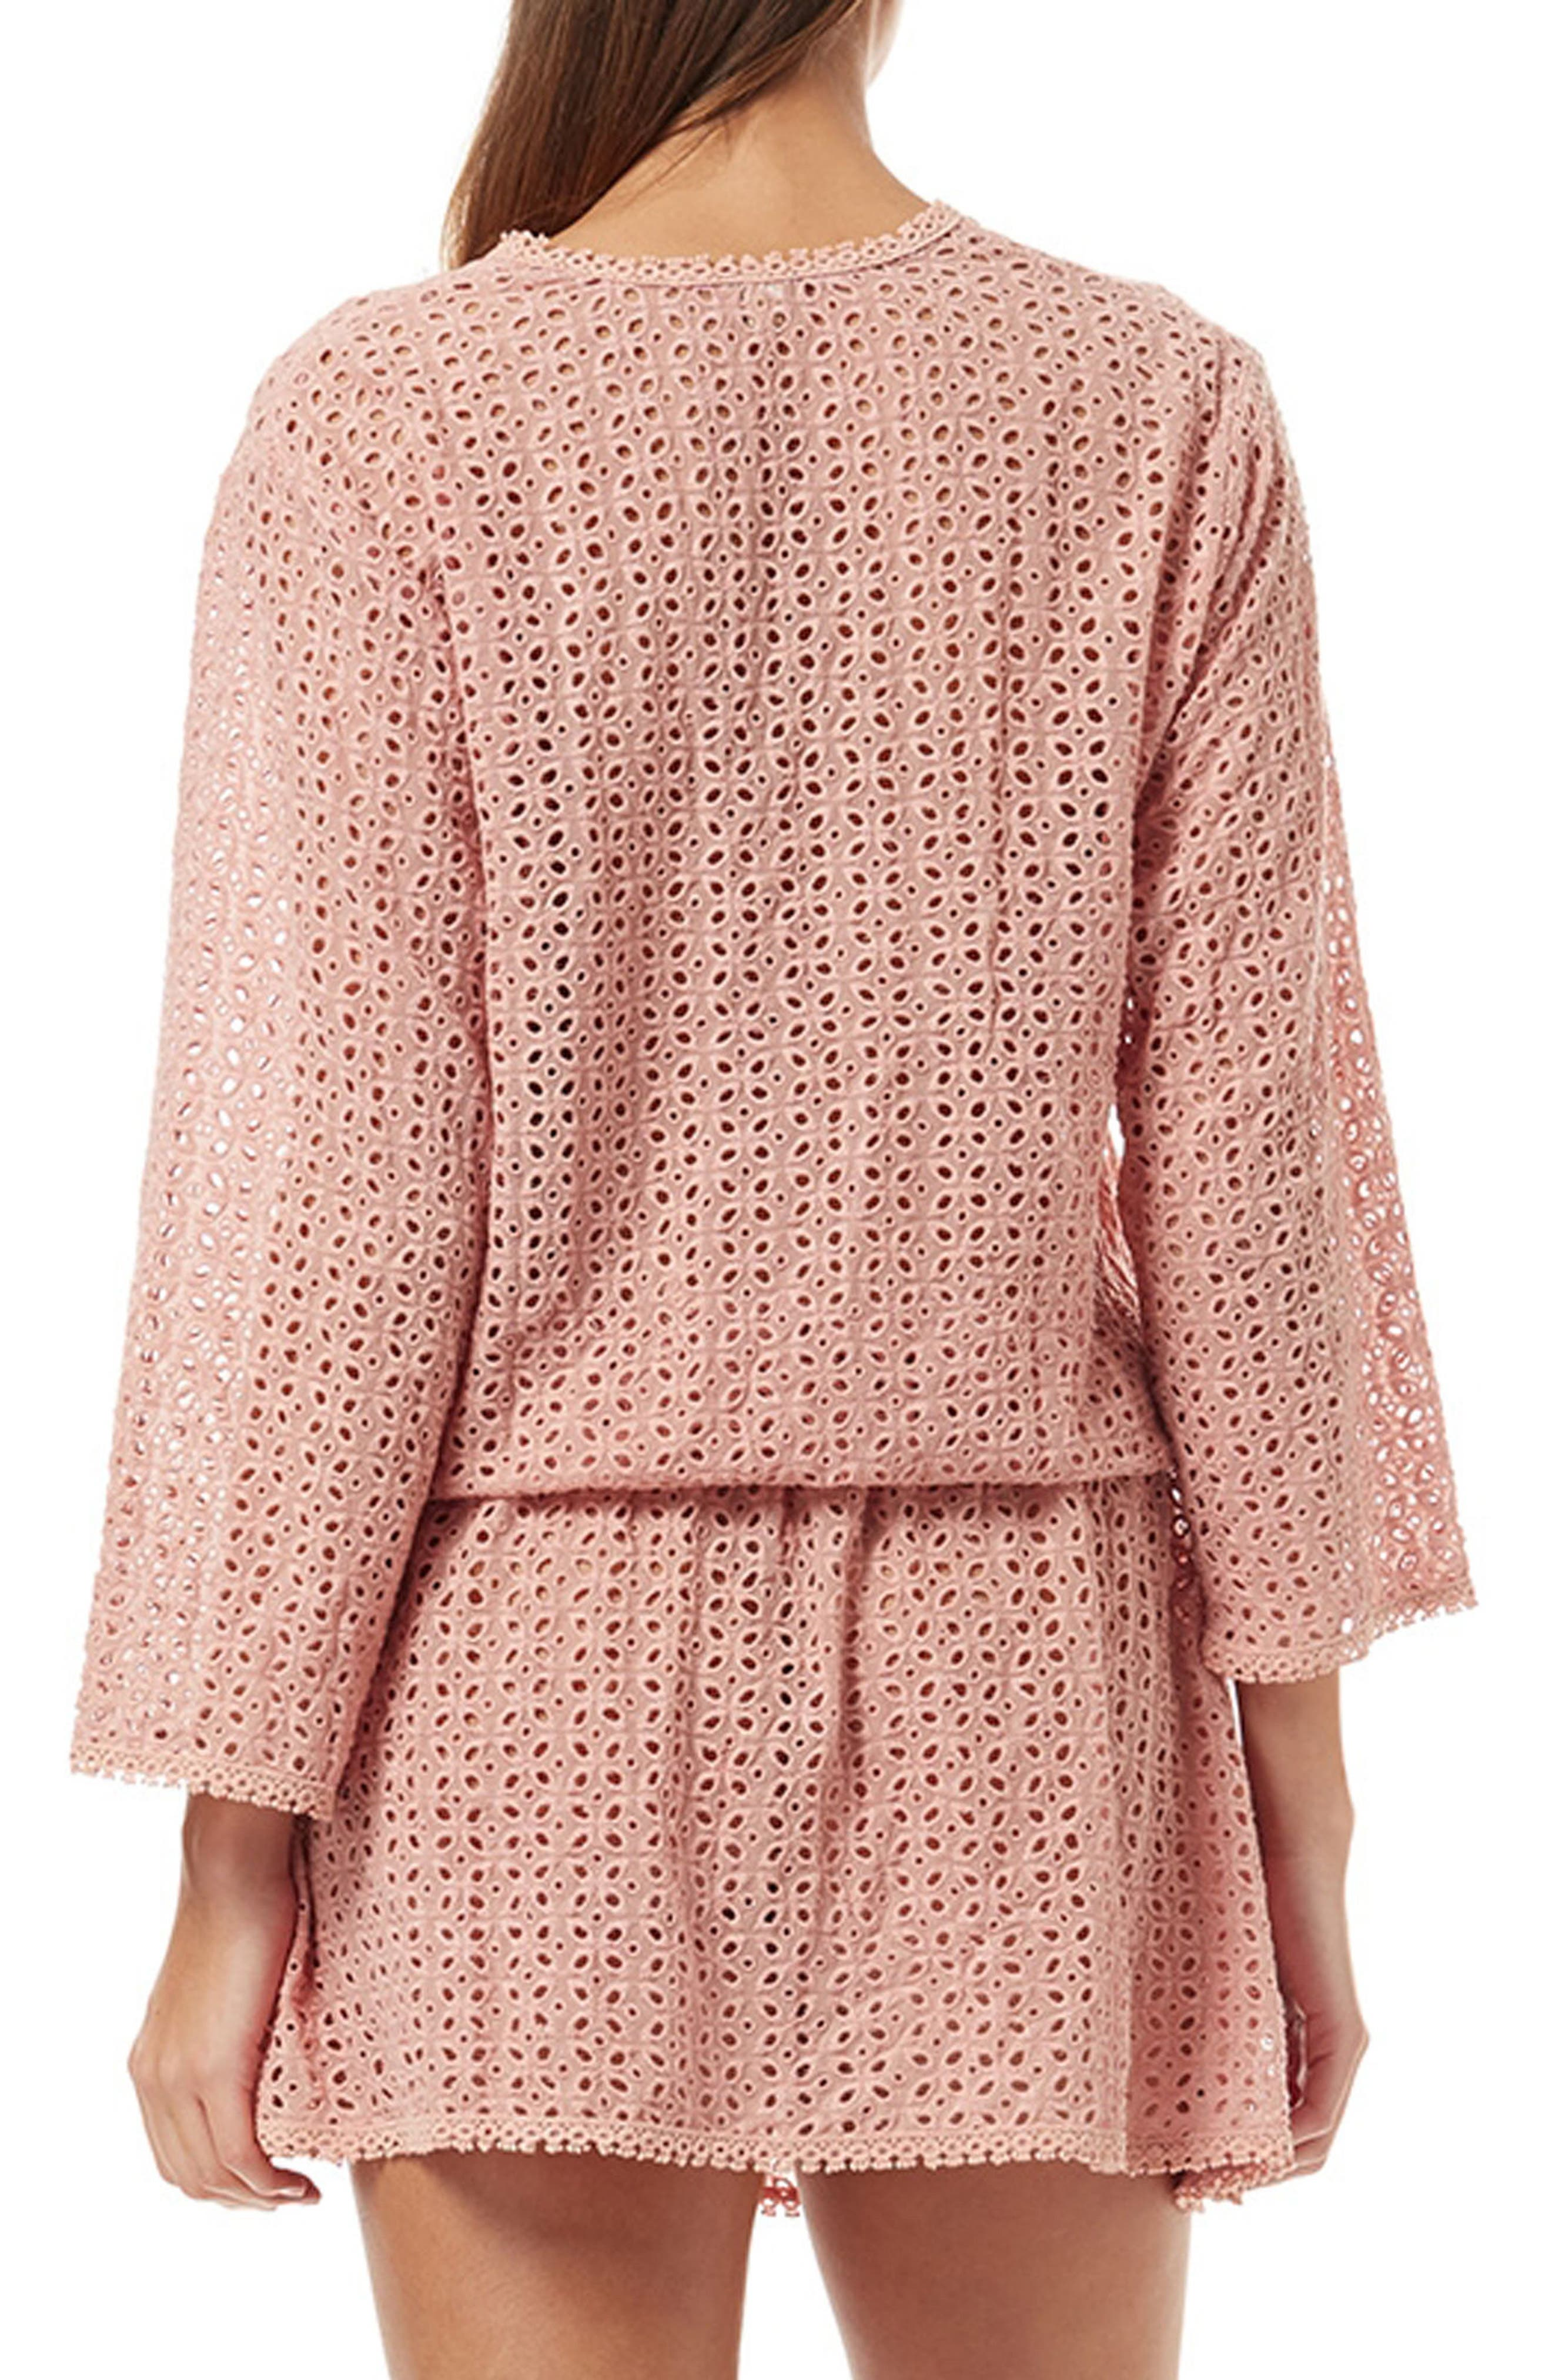 Kylie Cover-Up Dress,                             Alternate thumbnail 2, color,                             DUSTY ROSE